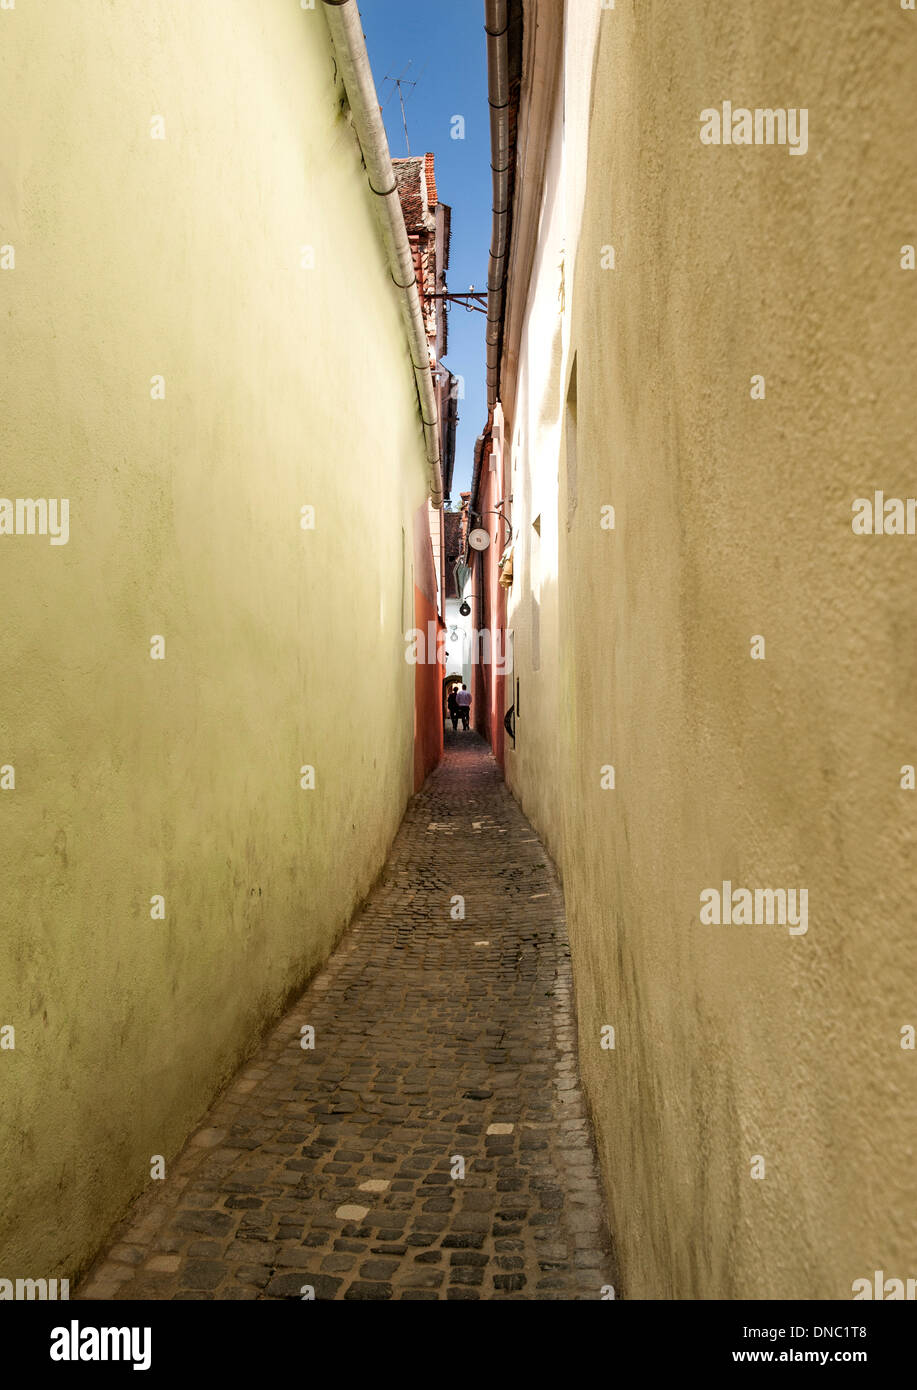 Rope Passage Stock Photos & Rope Passage Stock Images - Alamy